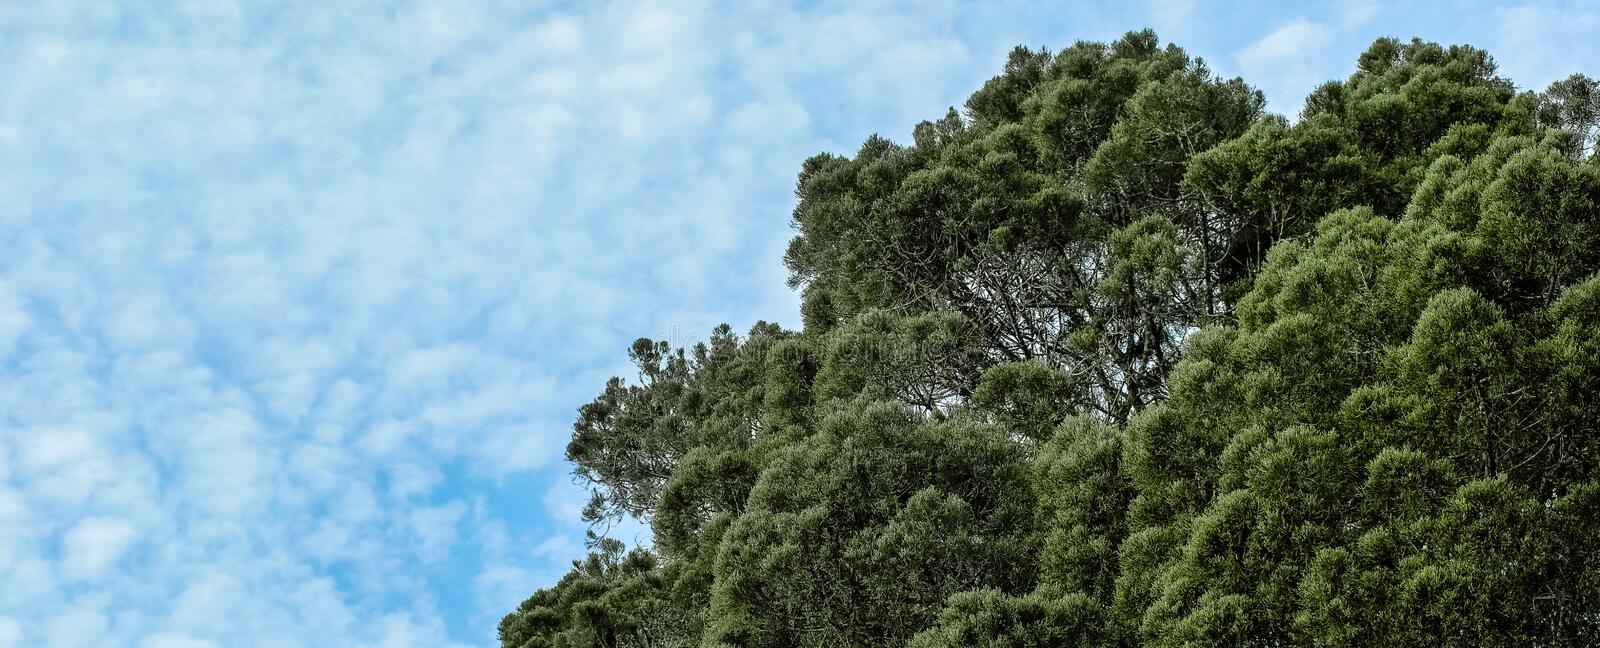 Tree top and blue skies royalty free stock image